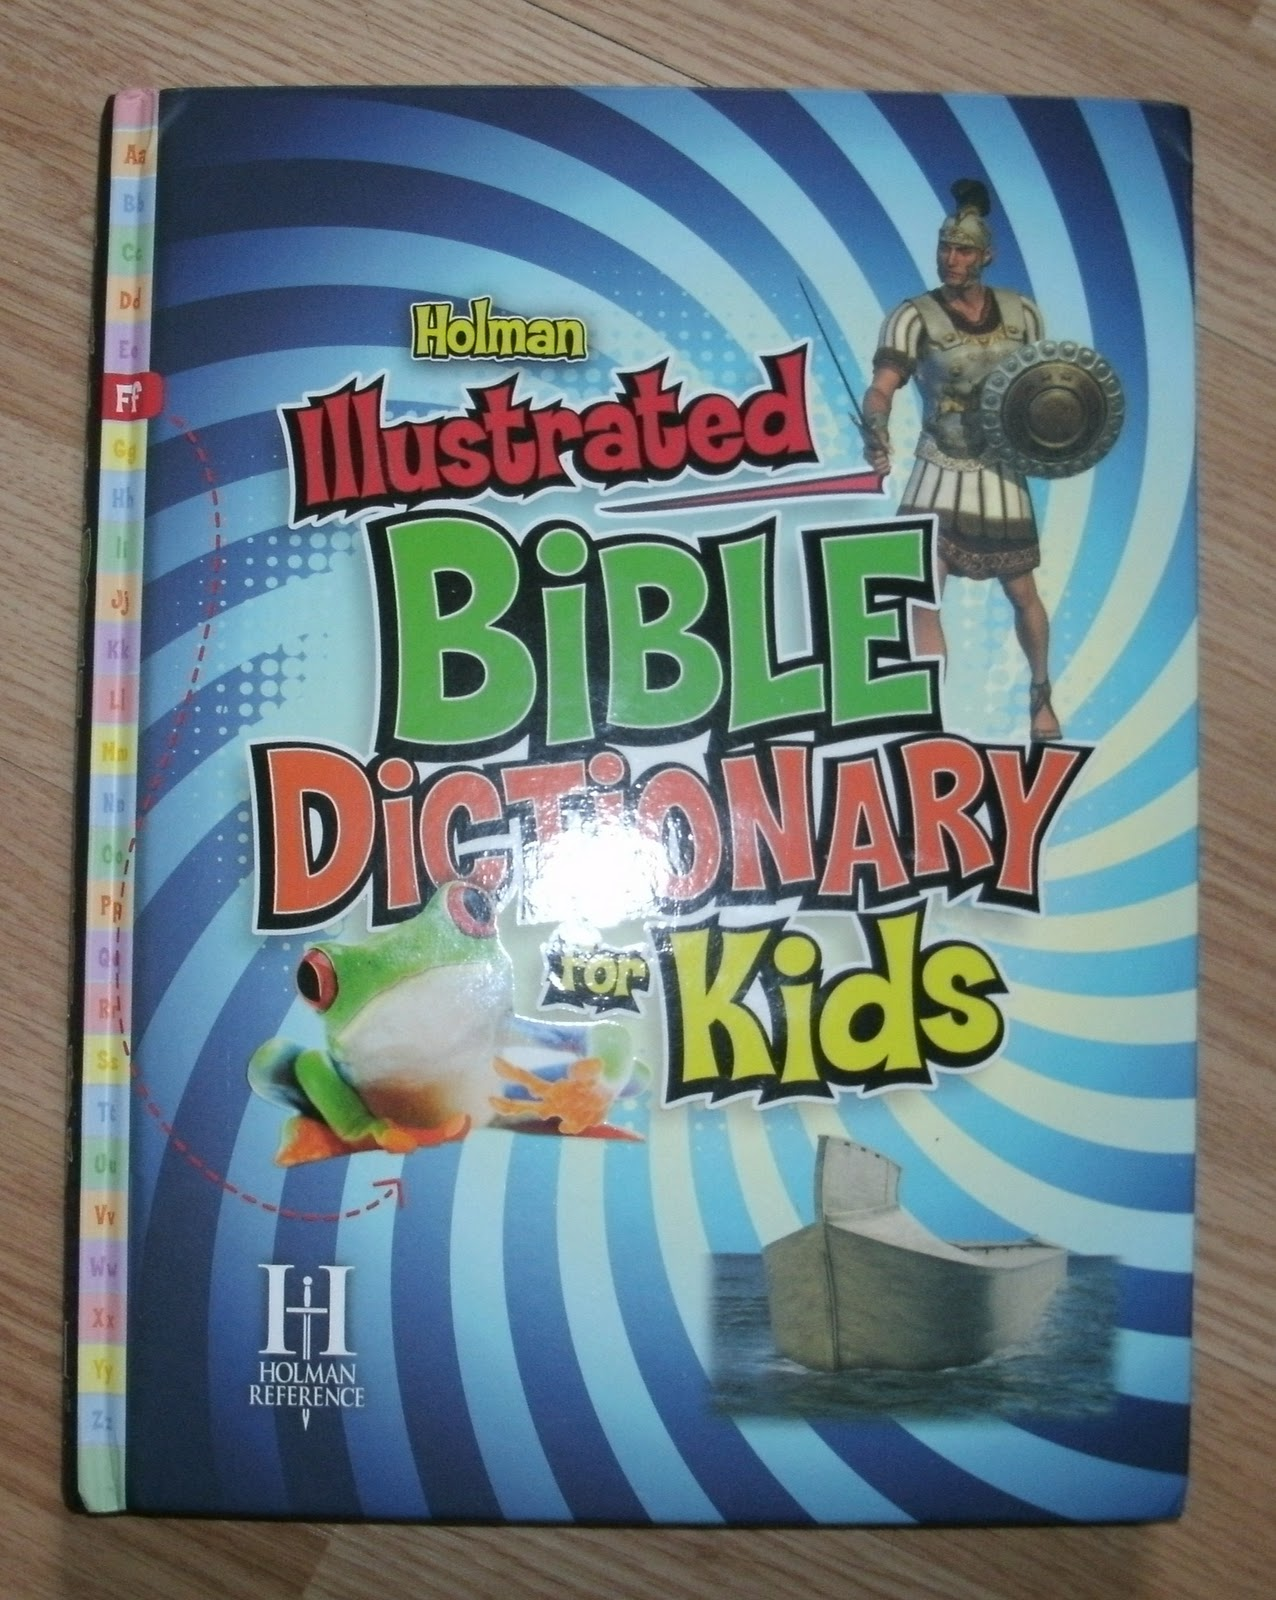 Tell\'n It!: REVIEW: Holman Illustrated Bible Dictionary For Kids